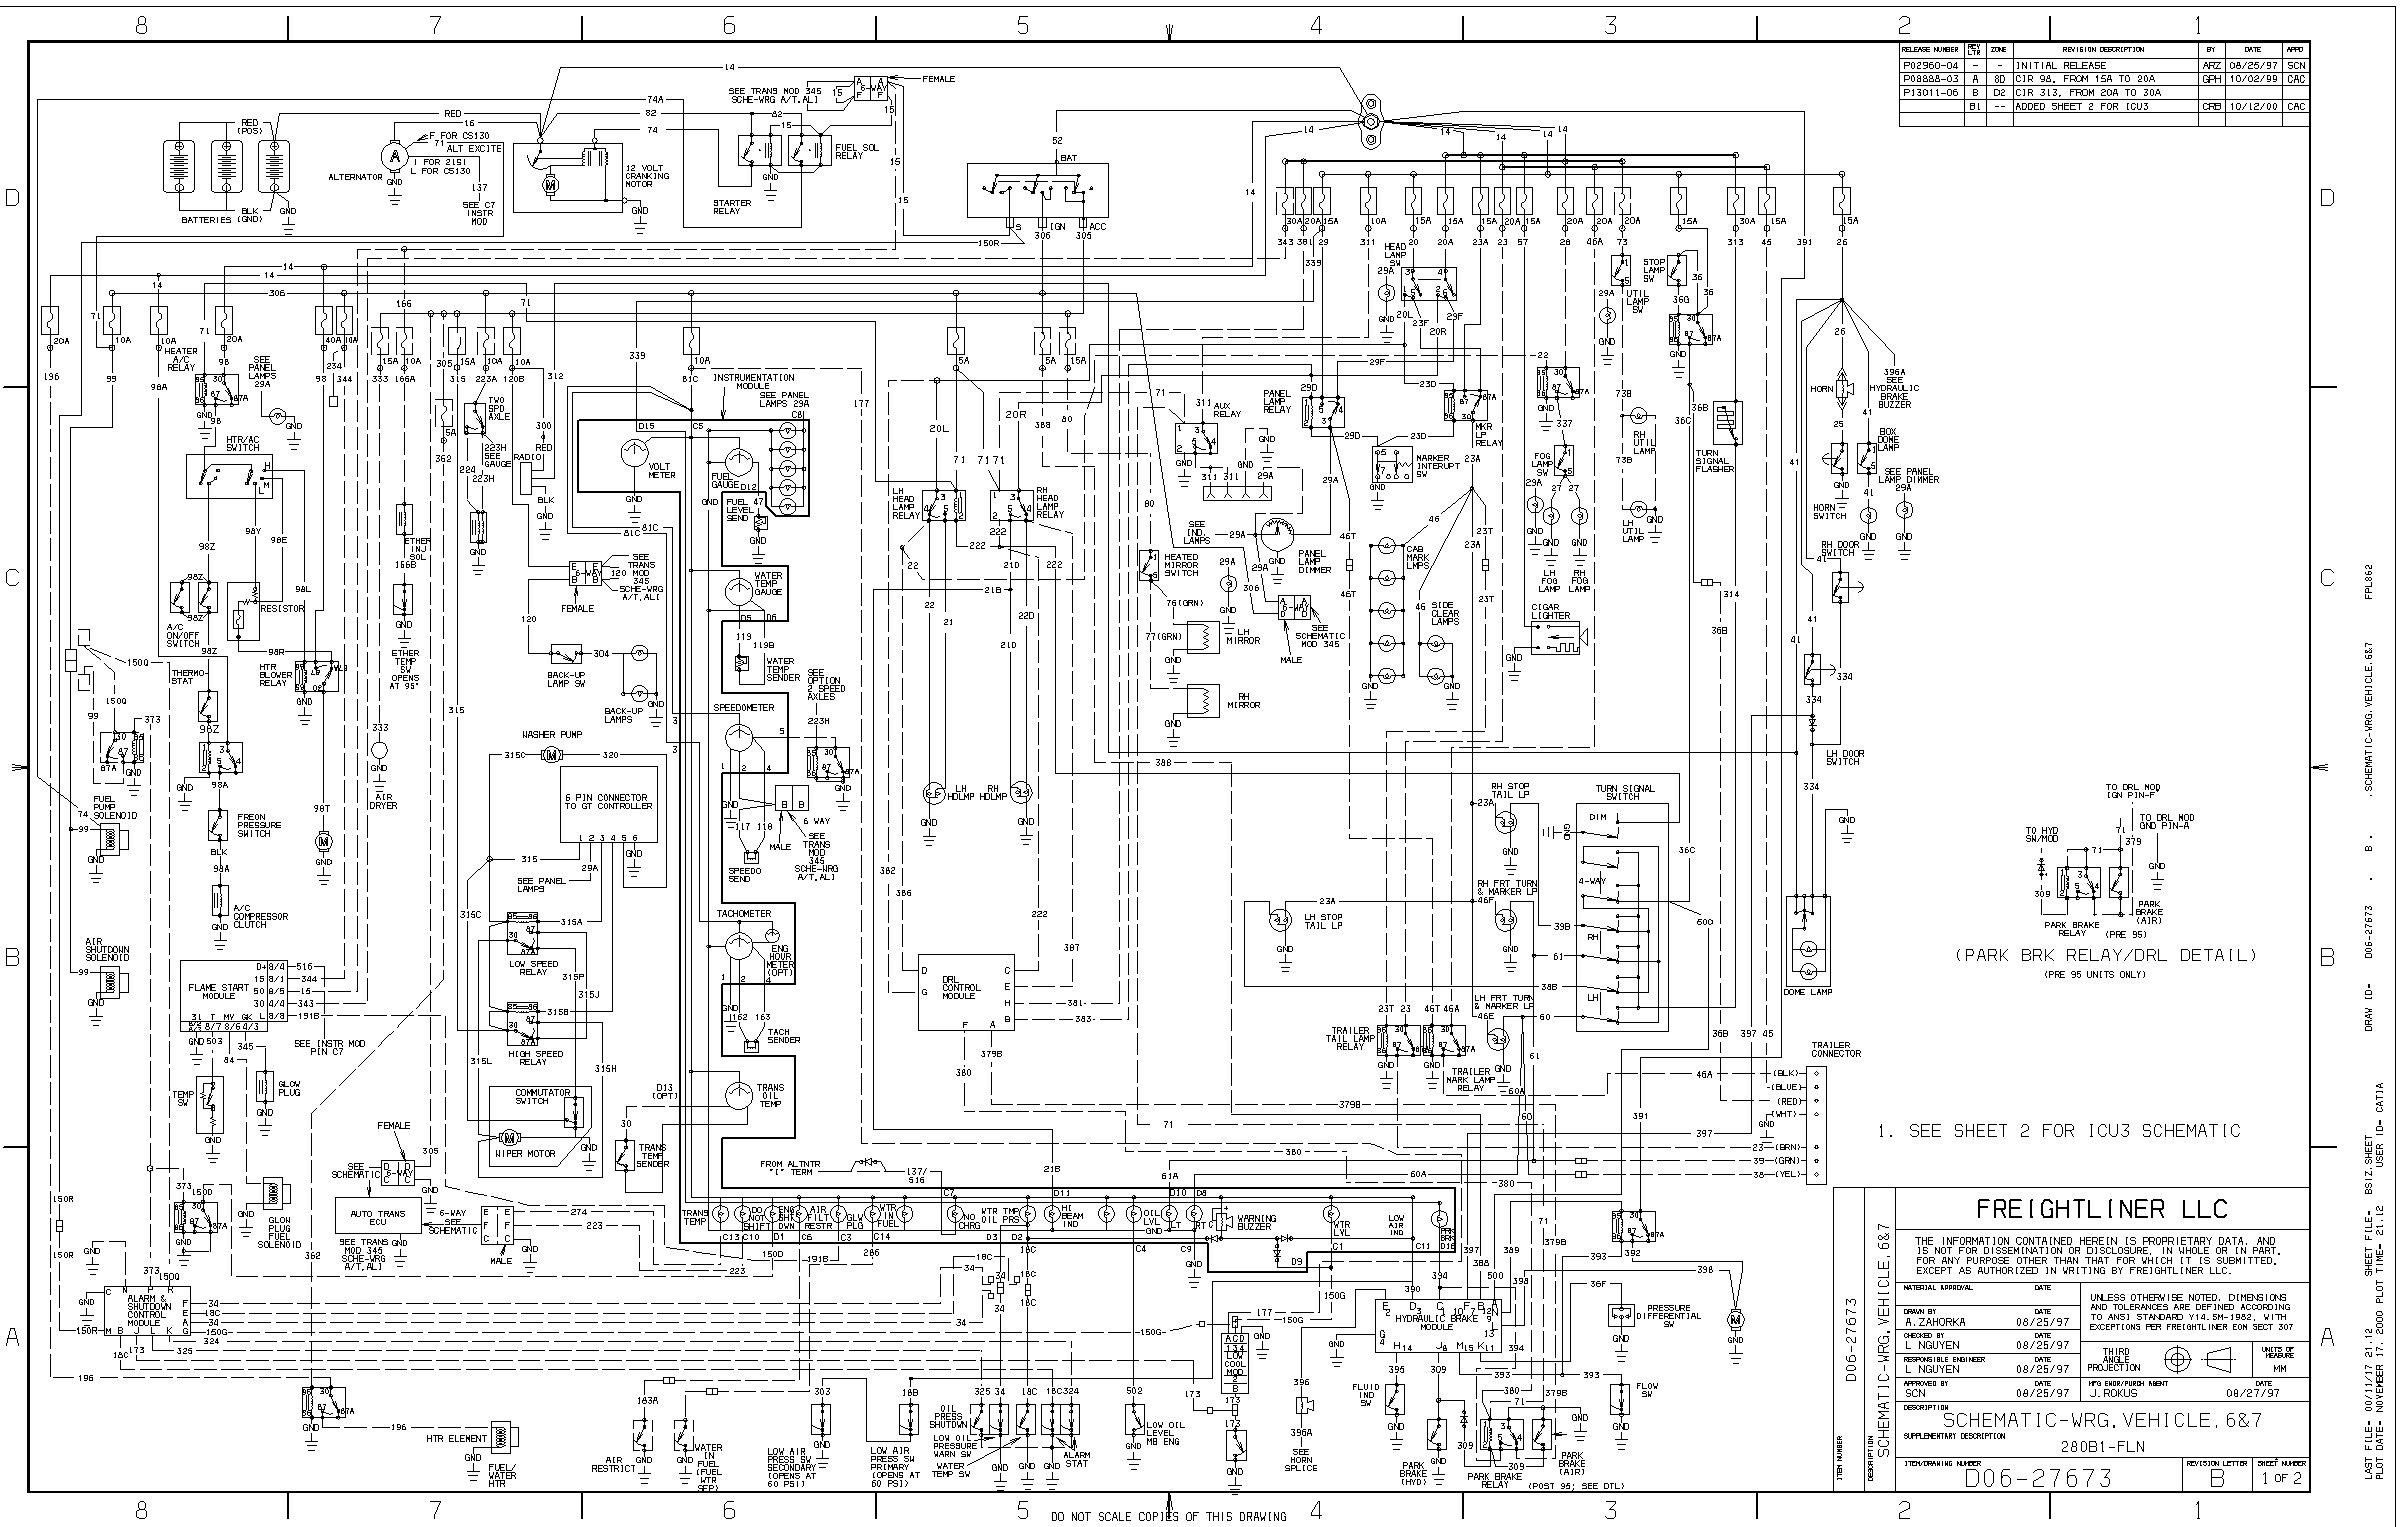 2006 Peterbilt Wiring Diagram Chassis - Information Of Wiring Diagram •